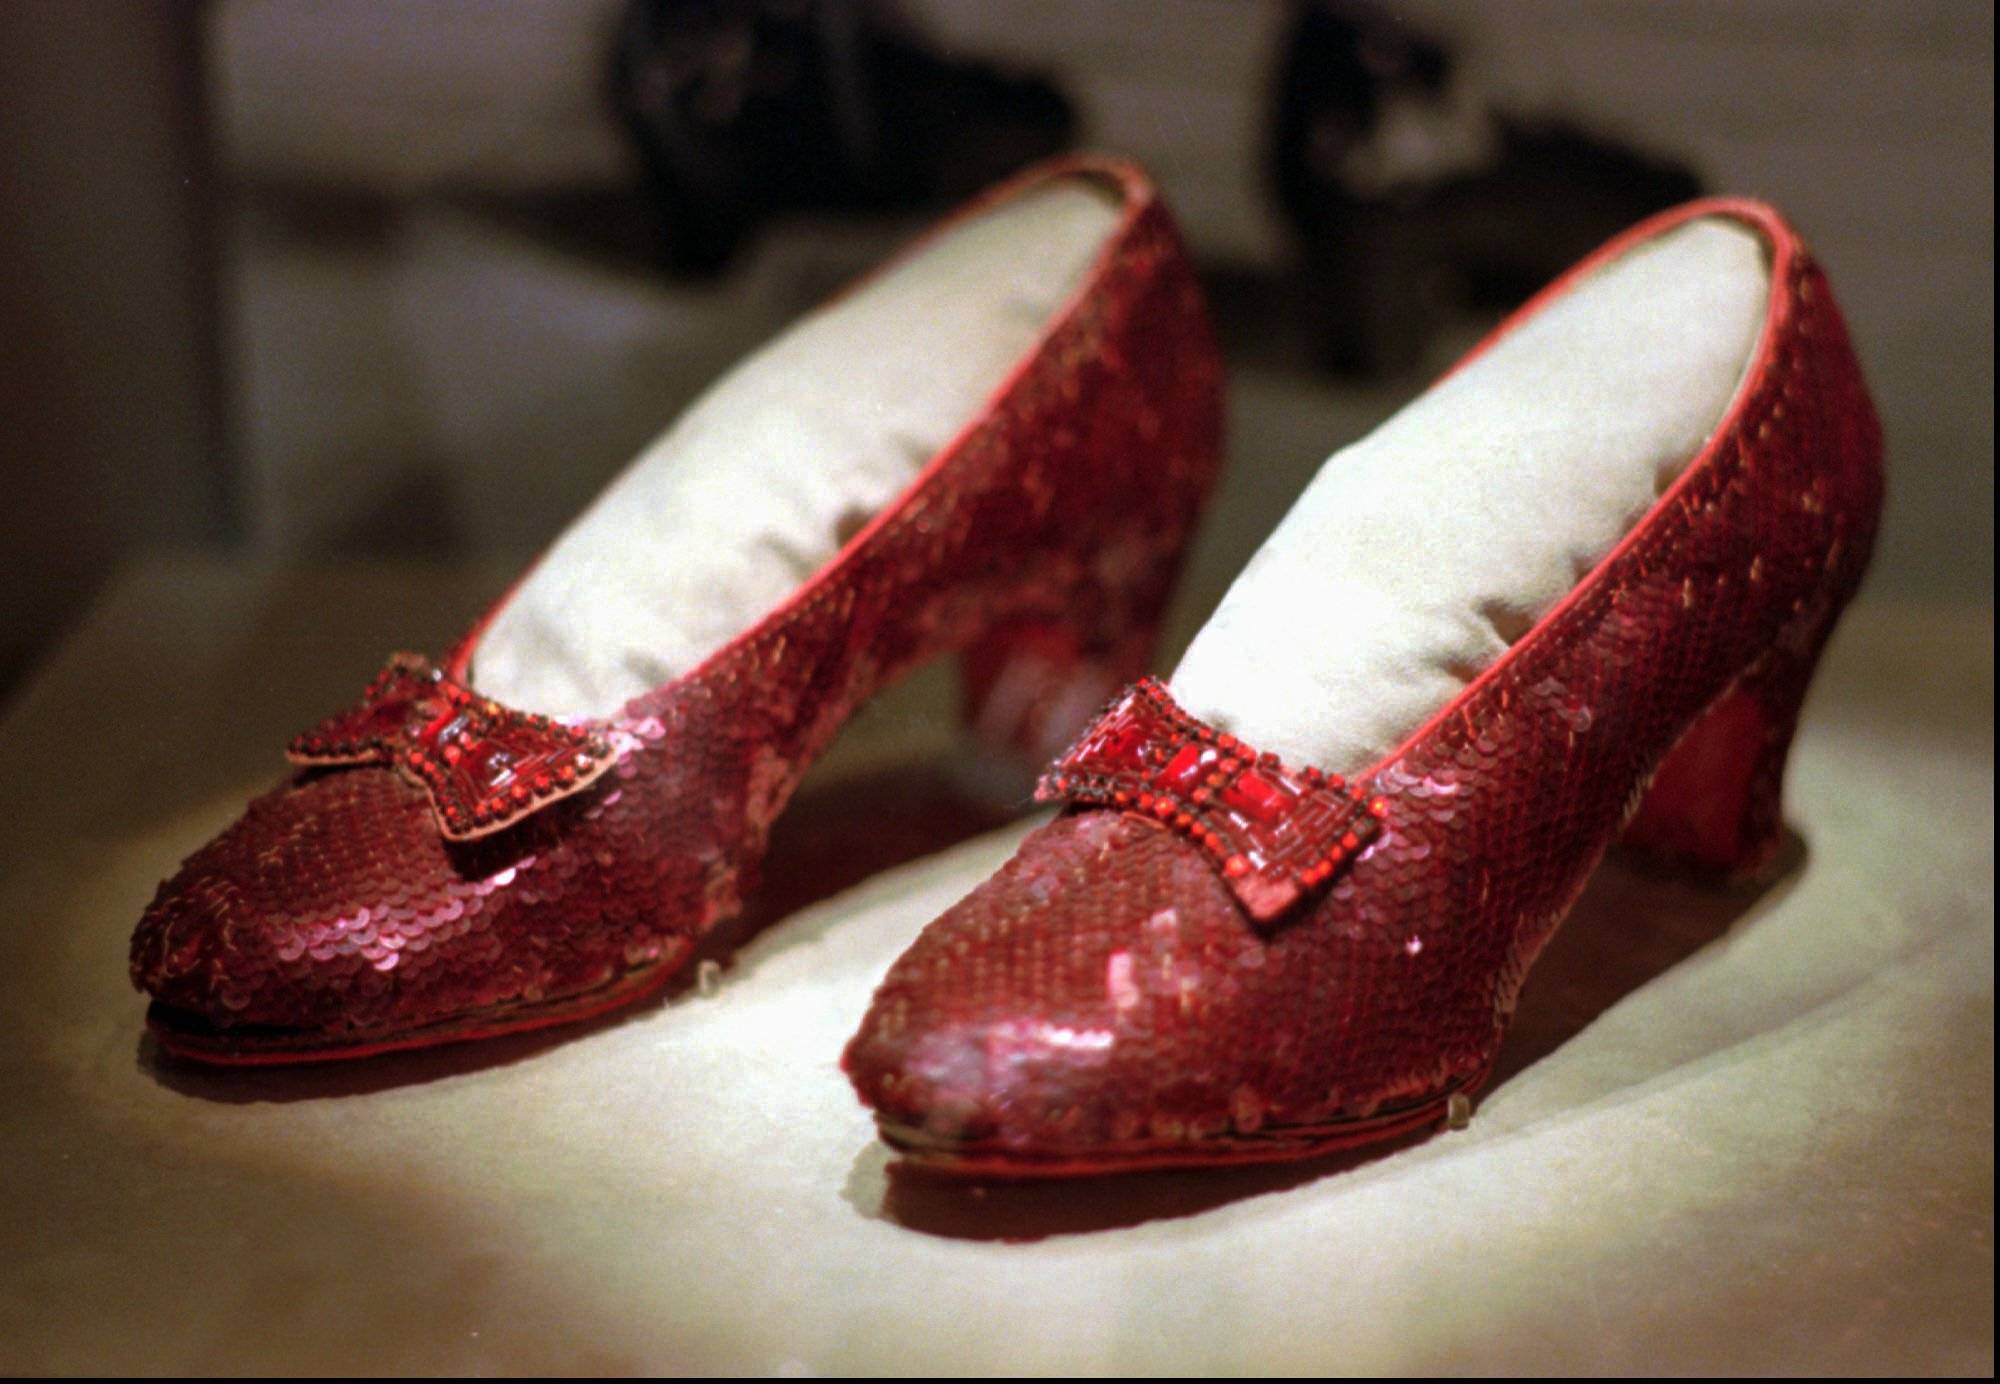 "One of the four pairs of ruby slippers worn by Judy Garland in the 1939 film ""The Wizard of Oz"" on display during a media tour of the ""America's Smithsonian"" traveling exhibition in Kansas City, Mo. An anonymous donor has offered a $1 million reward for credible information leading to a pair of the sequined shoes which was stolen from a museum in her Minnesota hometown, Grand Rapids. The 10-year anniversary of the theft is in August 2015."